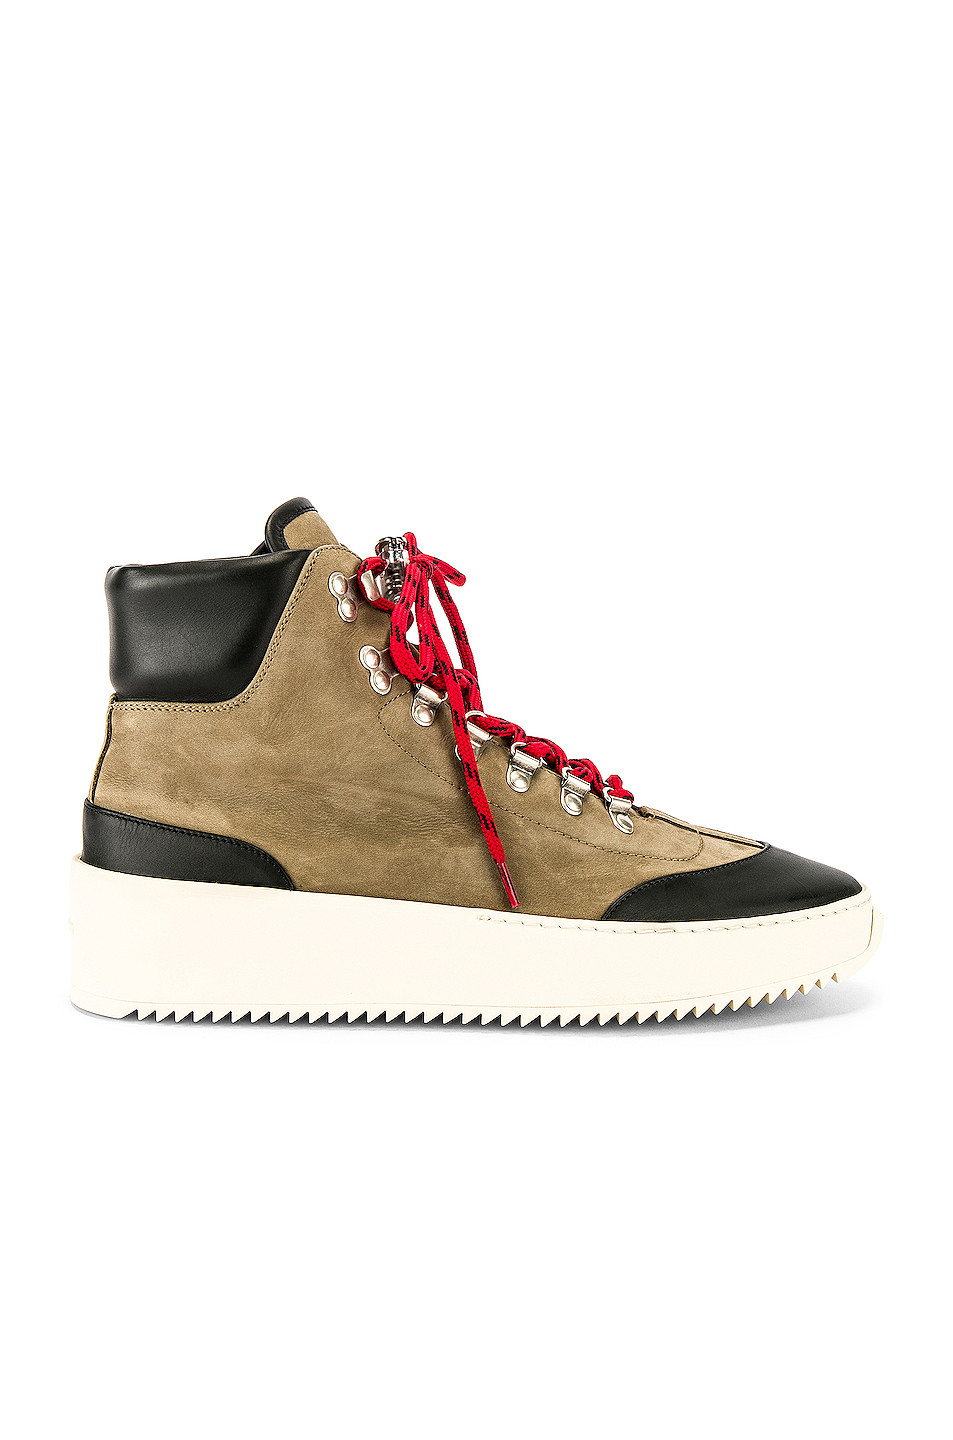 Fear of God 6th Collection Hiker